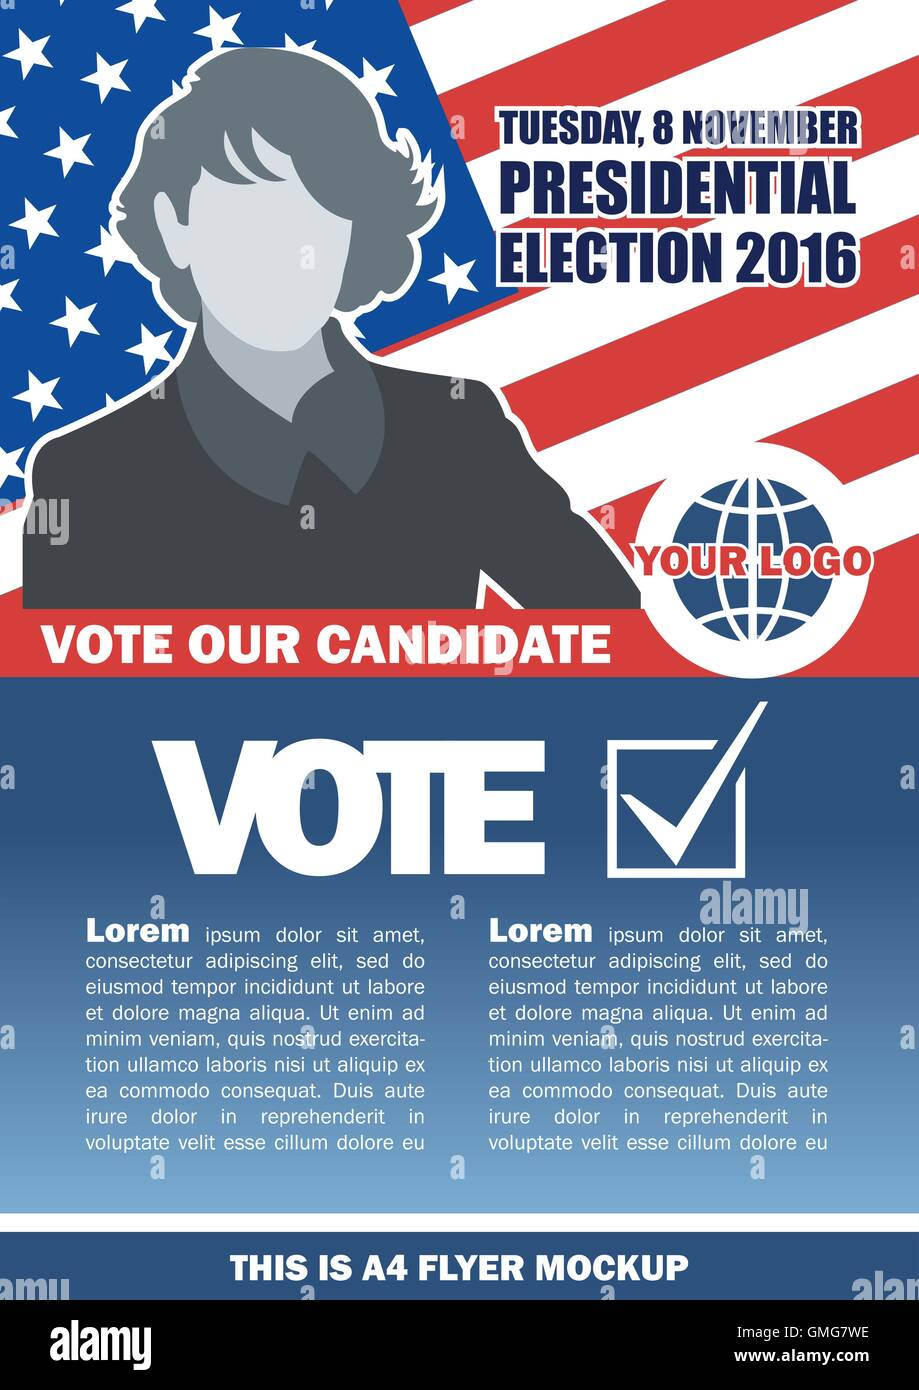 Usa 2016 election a4 flyer mockup with country map, vote checkbox and female candidate. Digital vector image - Stock Image